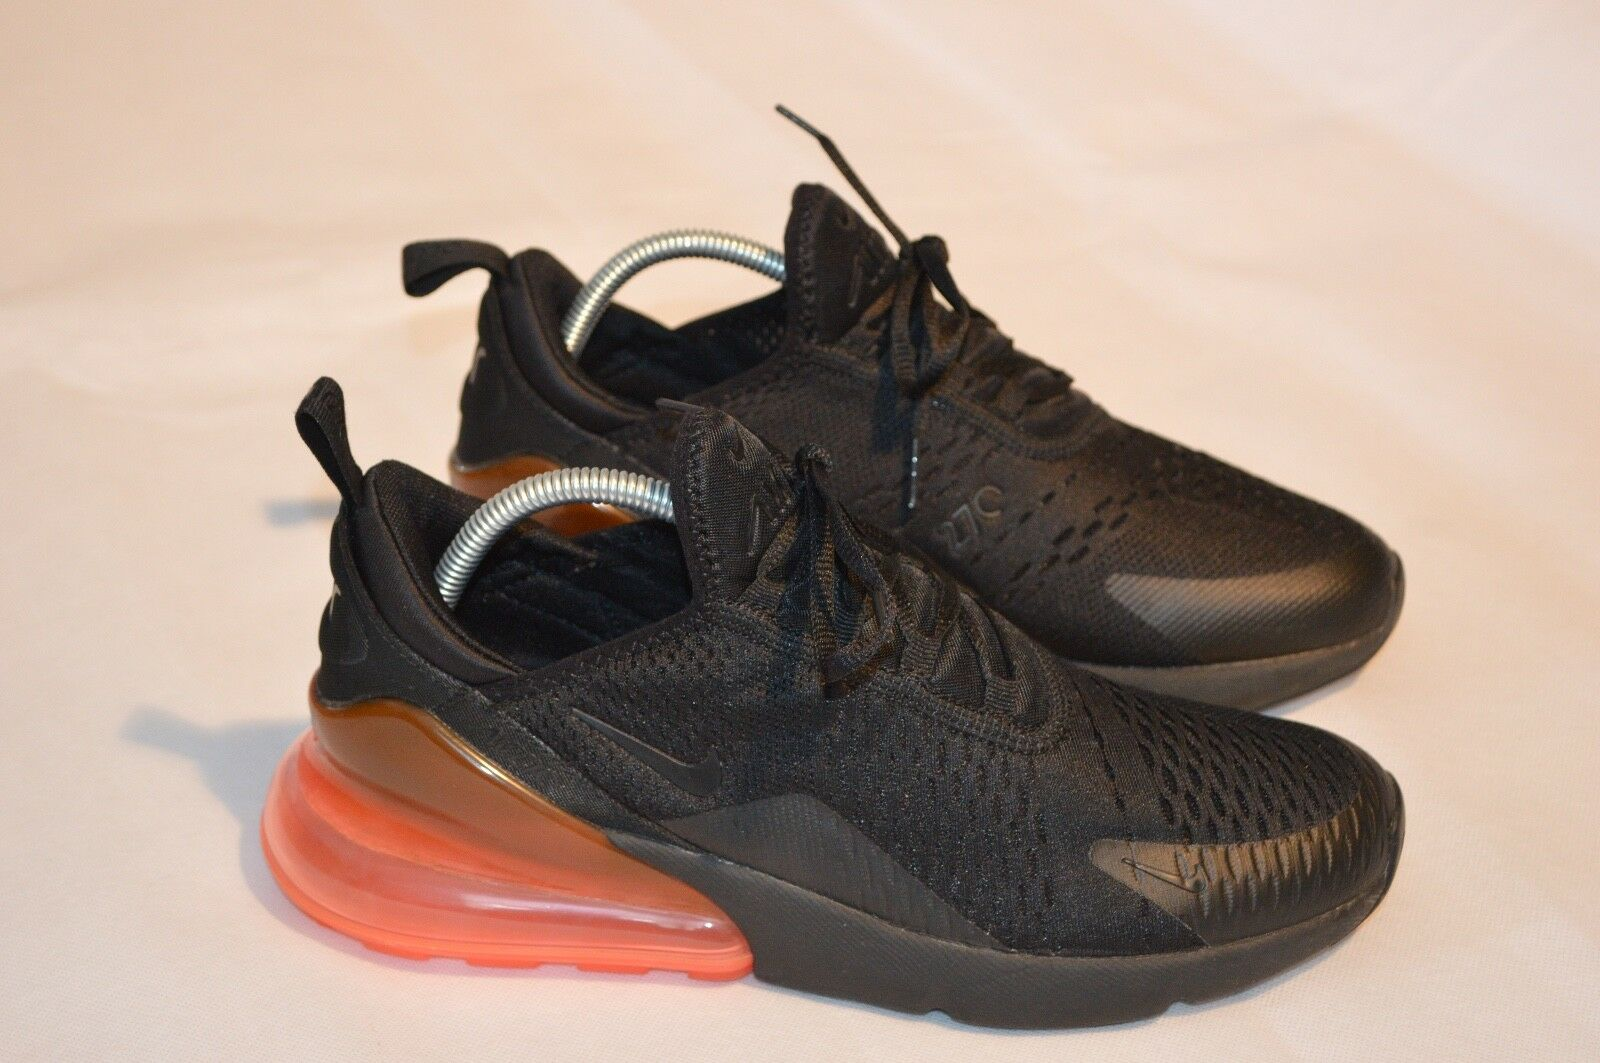 Nike Air 270 Hot Punch Black   Pink Lifestyle Gym Trainers shoes Mens Size